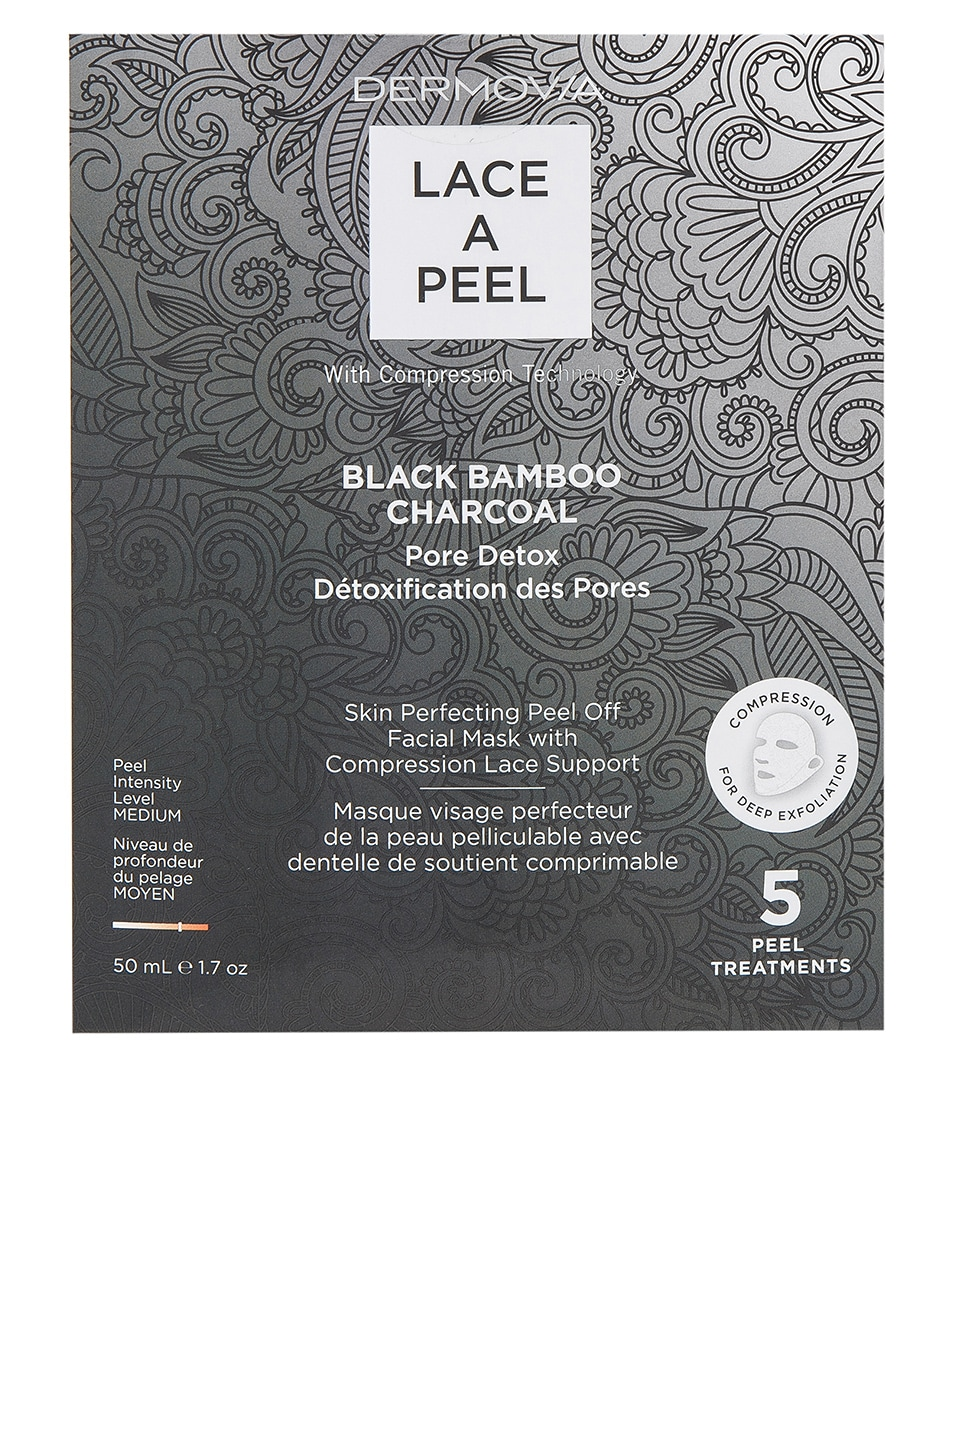 Dermovia Black Bamboo Charcoal Lace a Peel Mask 5 Pack